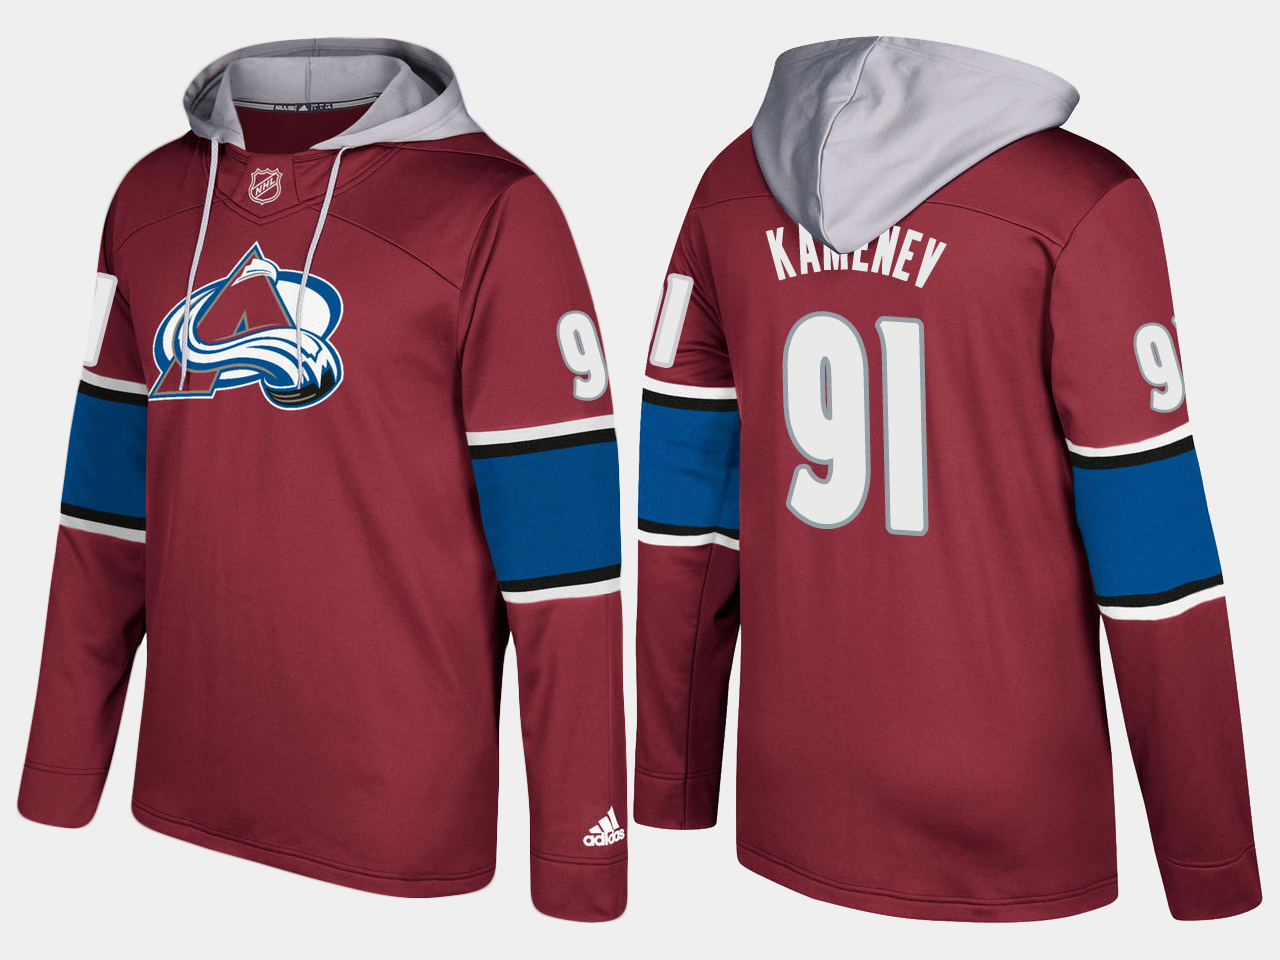 Men NHL Colorado avalanche 91 vladislav kamenev burgundy hoodie